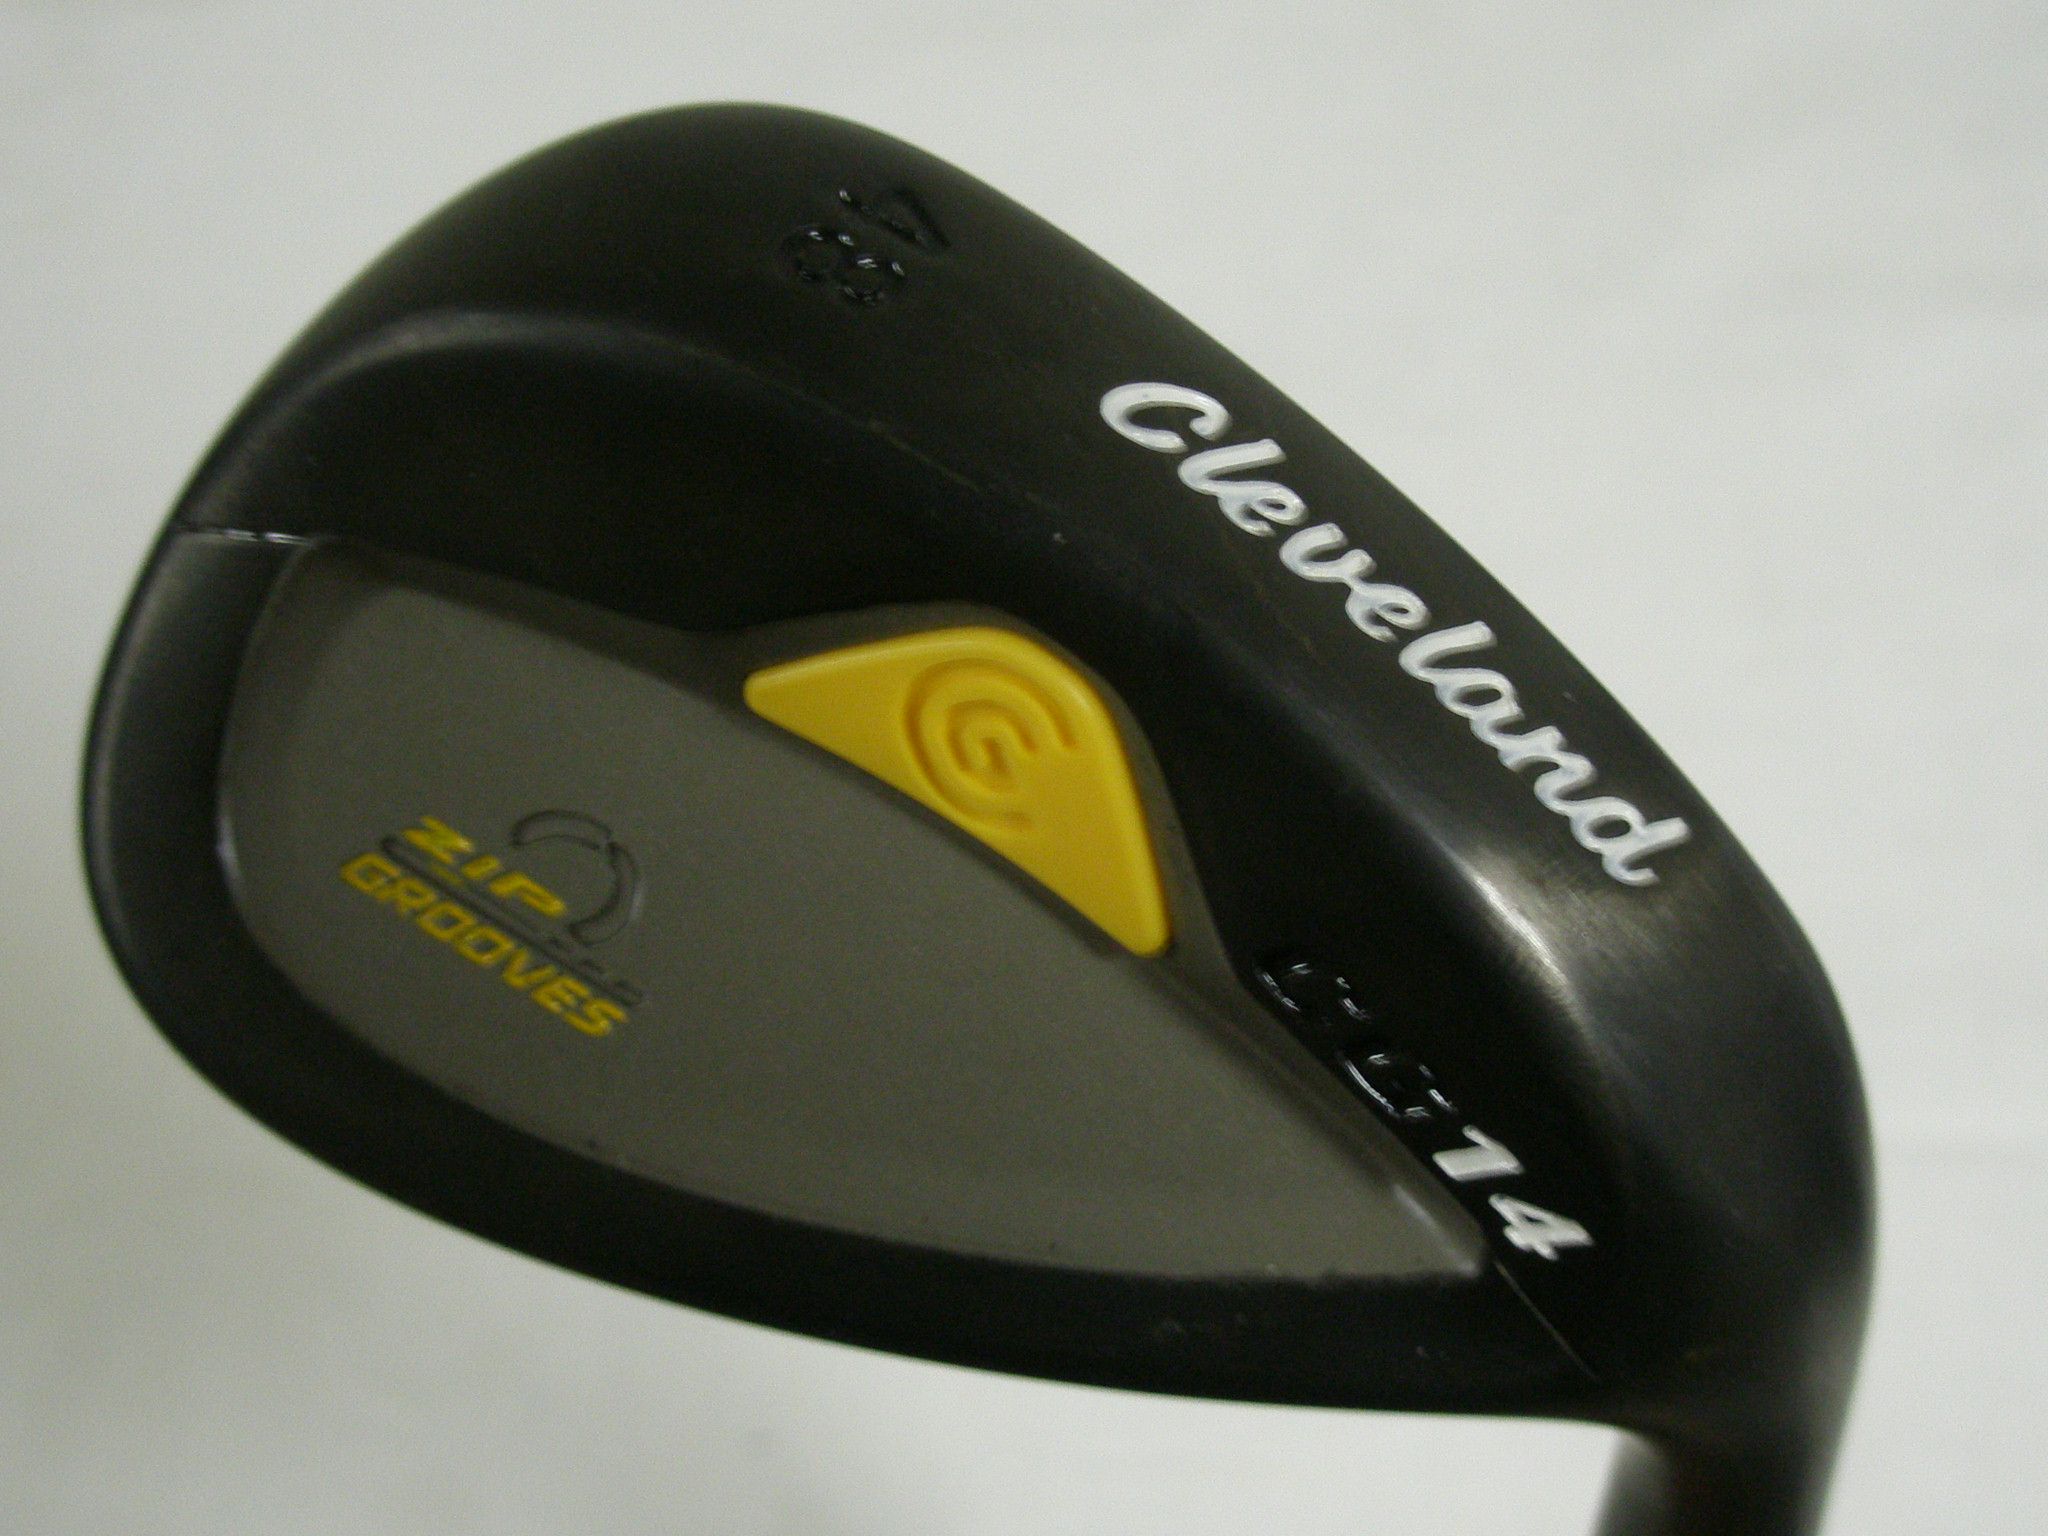 Cleveland Cg14 Black Pearl Pitching Wedge 48 06 Steel